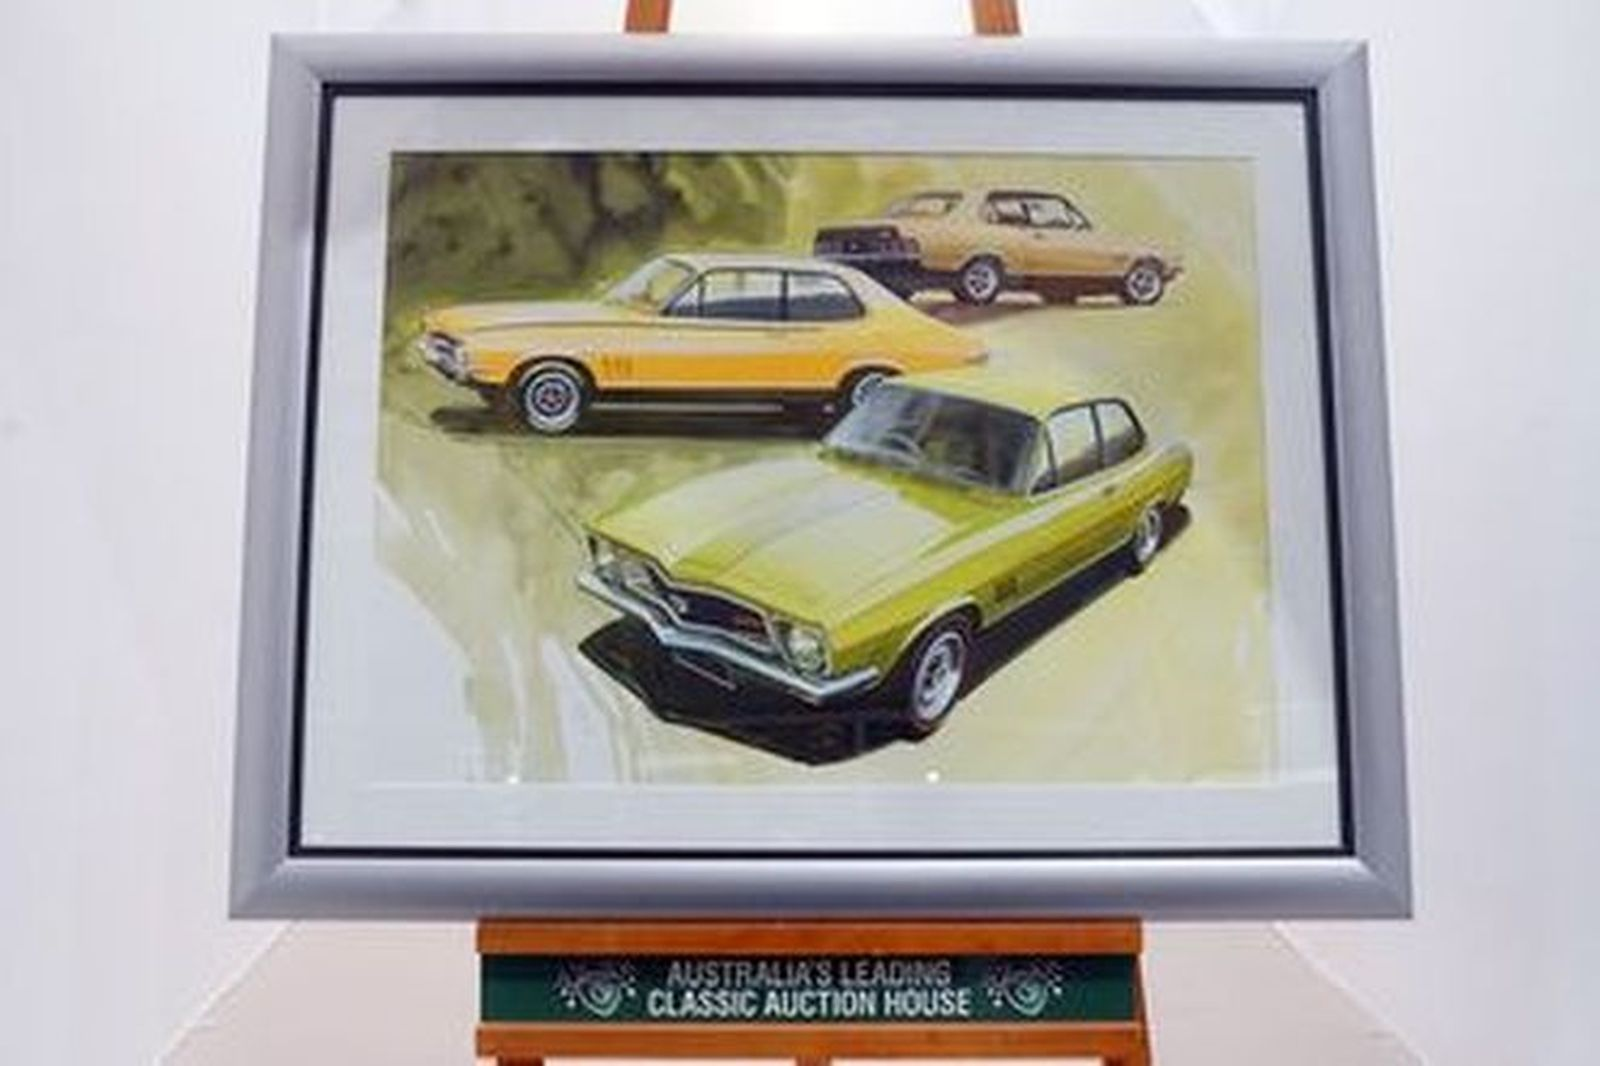 Painting - Holden Torana orignally commissioned for a jigsaw puzzle by Fredd Briggs (77x 98cm)